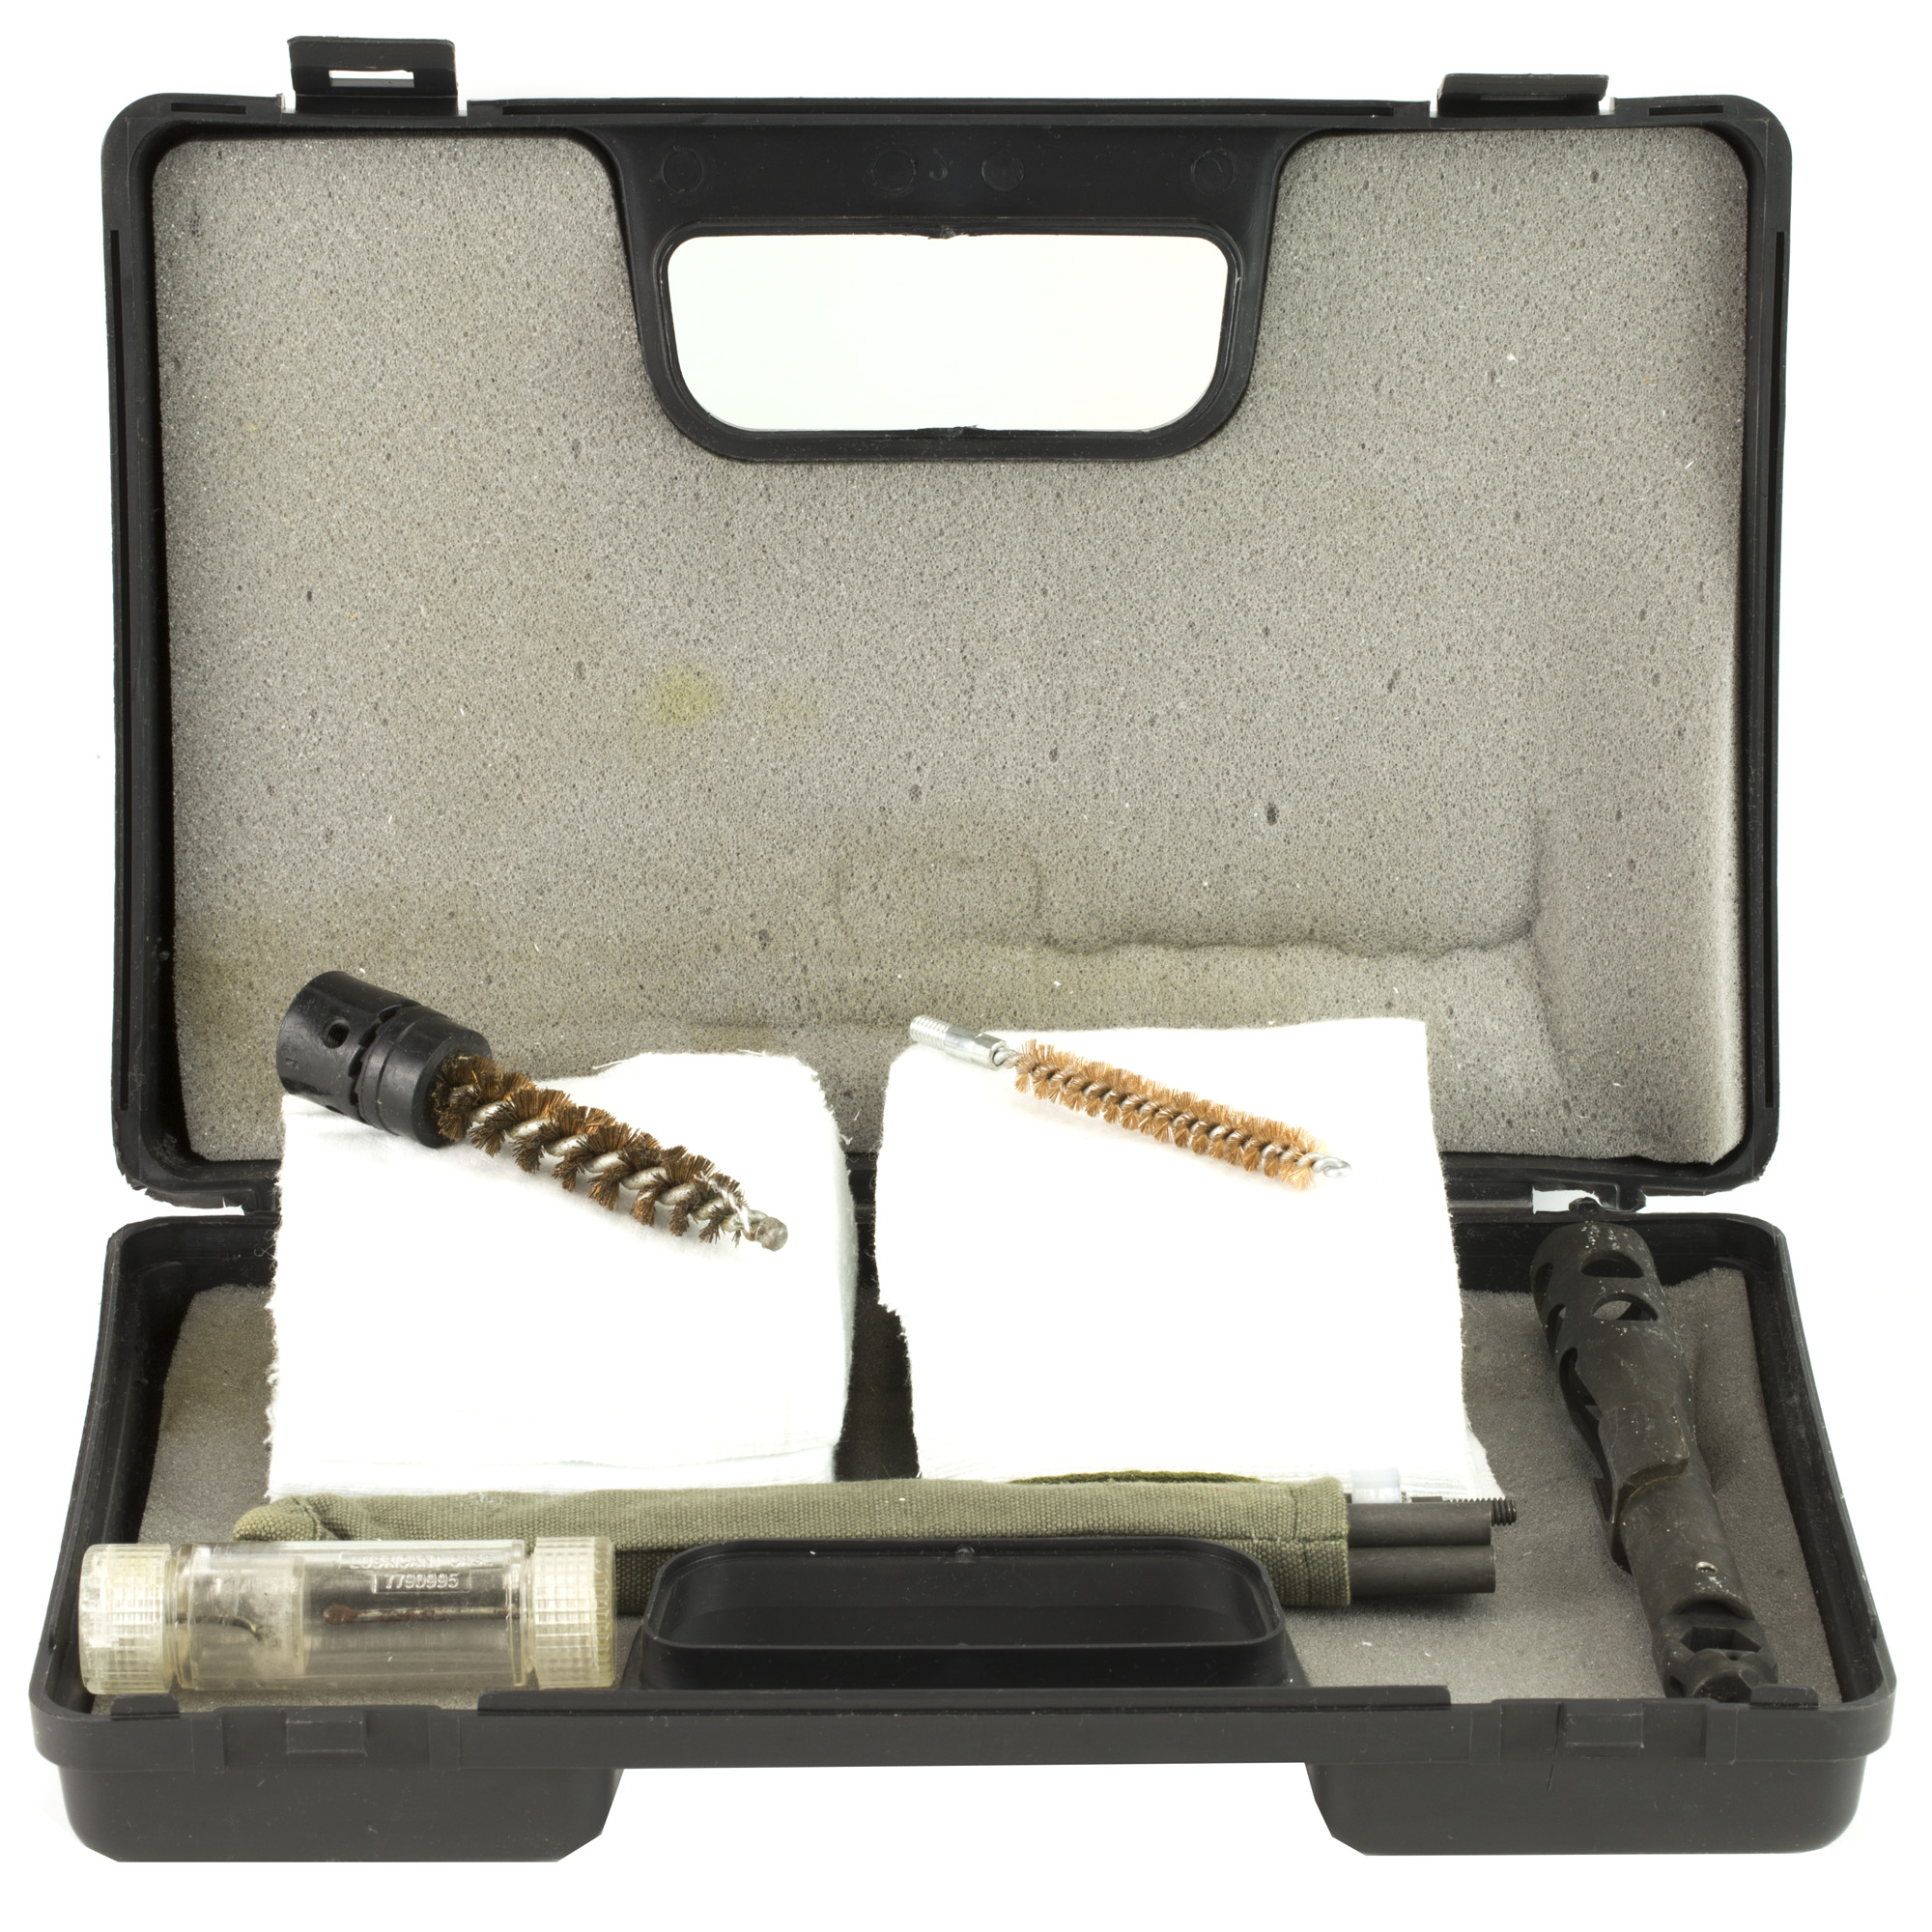 This cleaning kit by Springfield Armory is specifically designed for the M1A rifle.